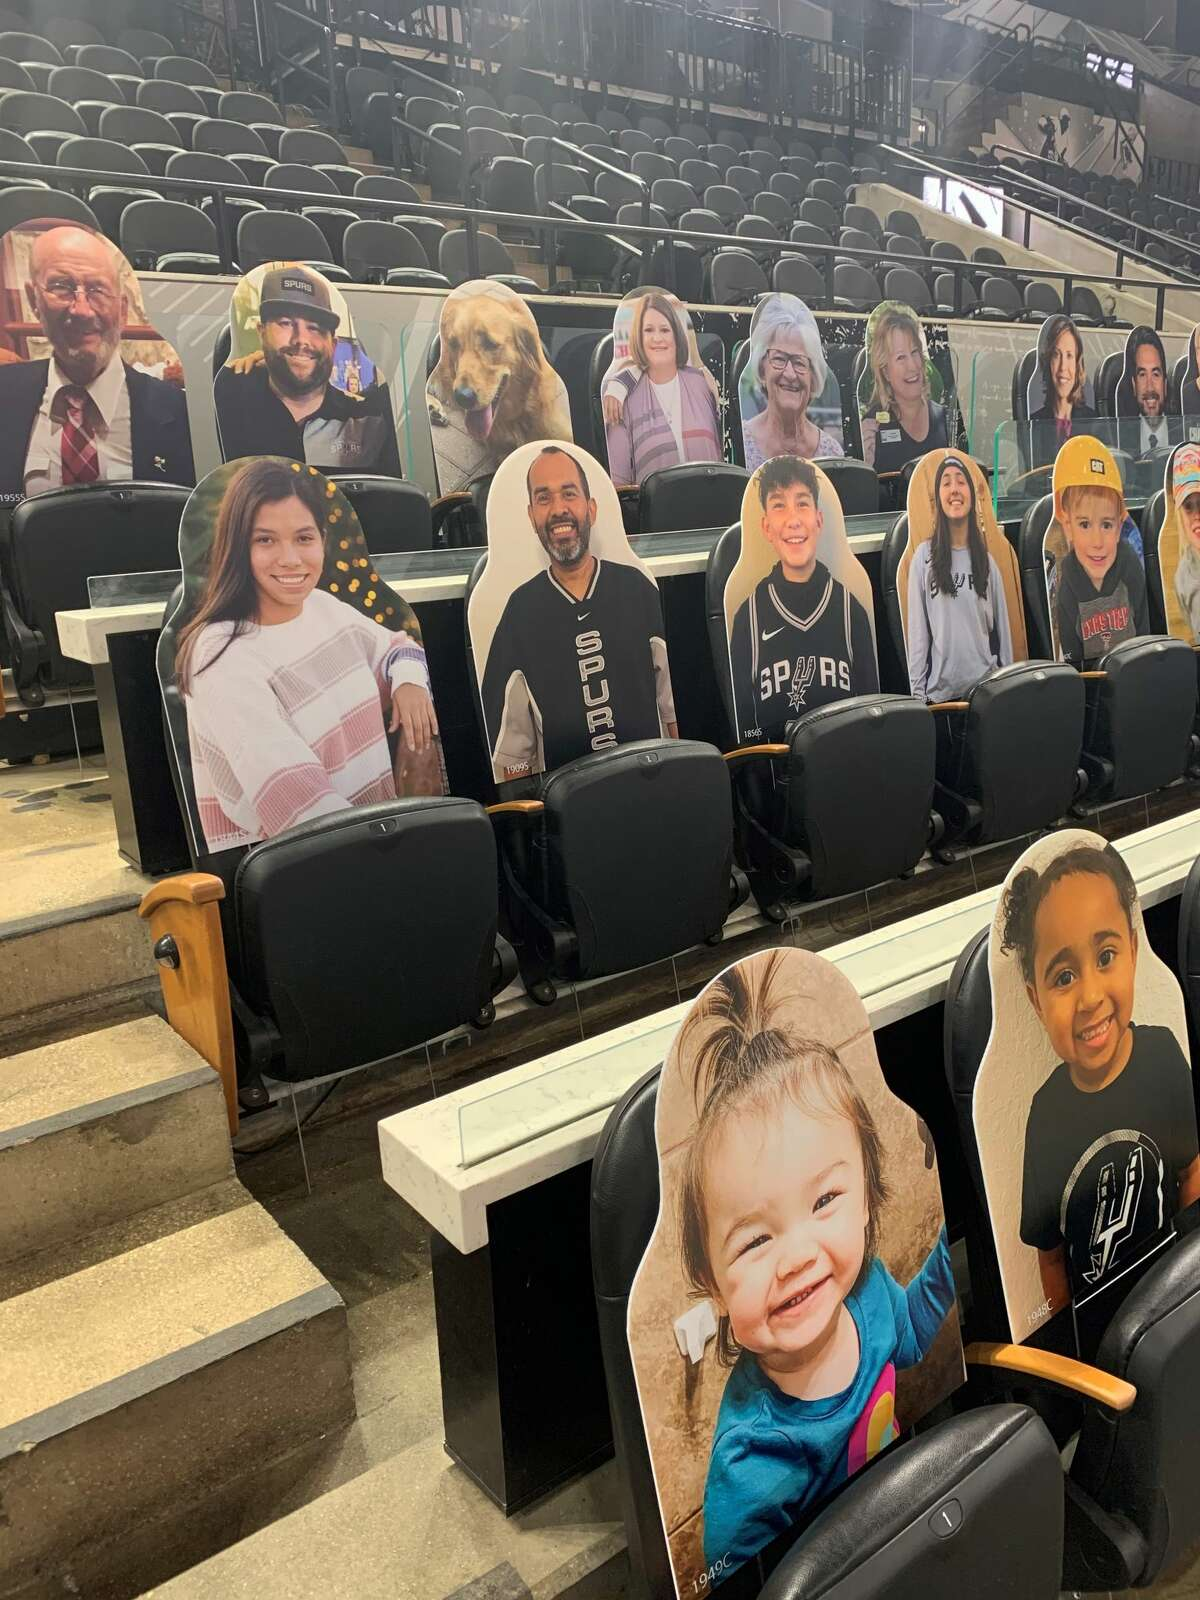 Now even non-season ticket holders can grab a seat in the lower deck. Spurs cutouts are being sold for $50.